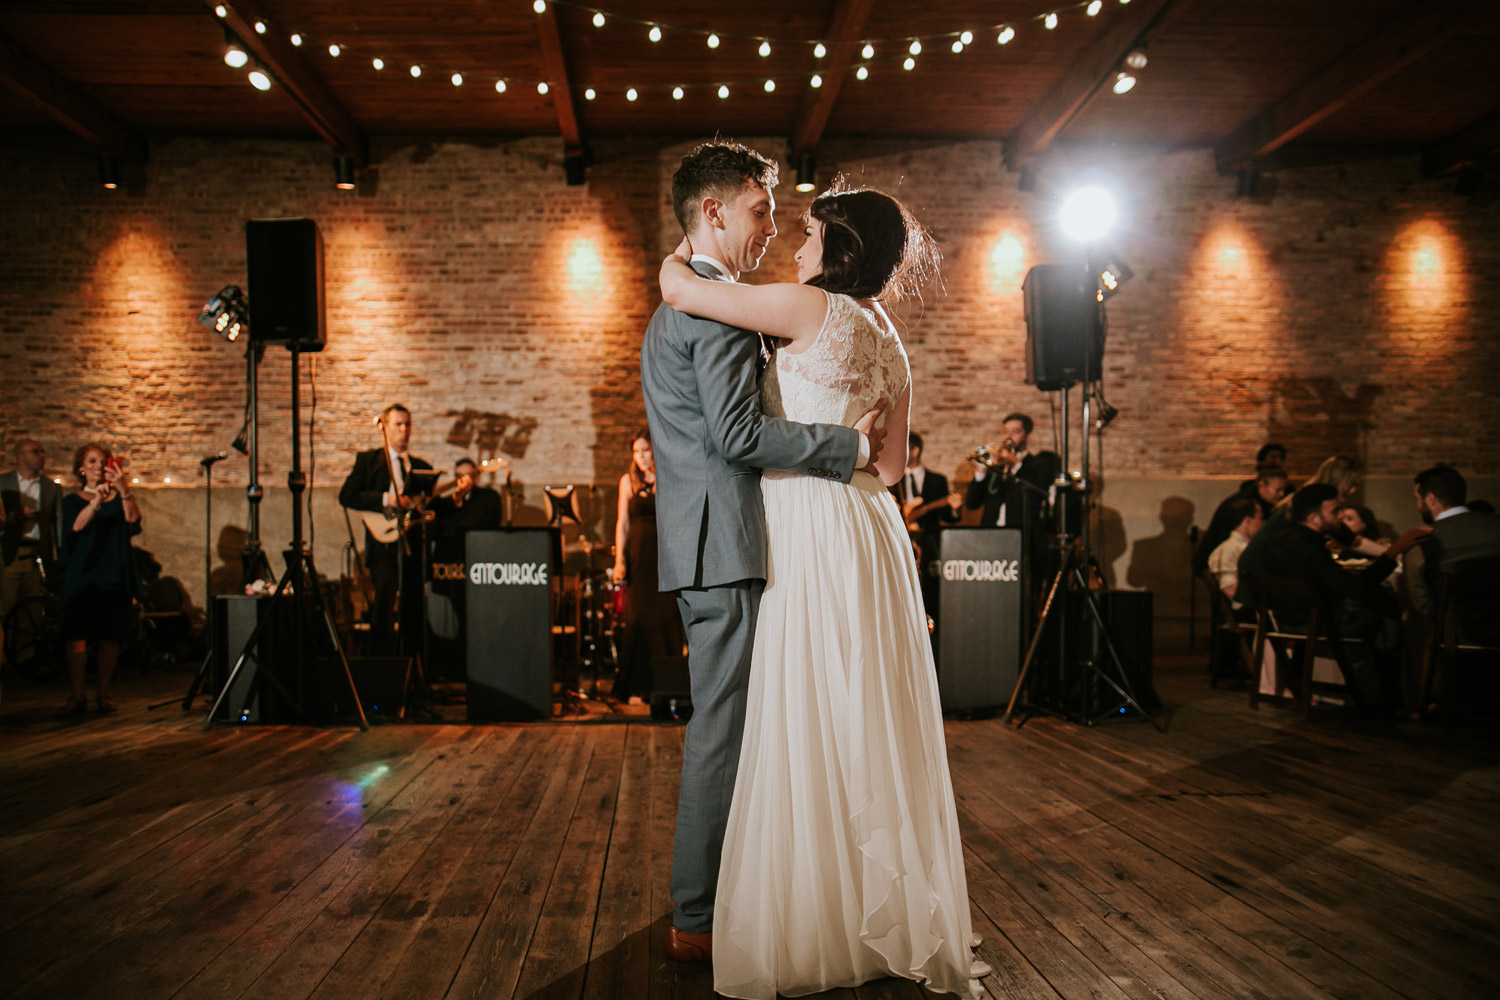 Bride and groom first dance at gallery 1028